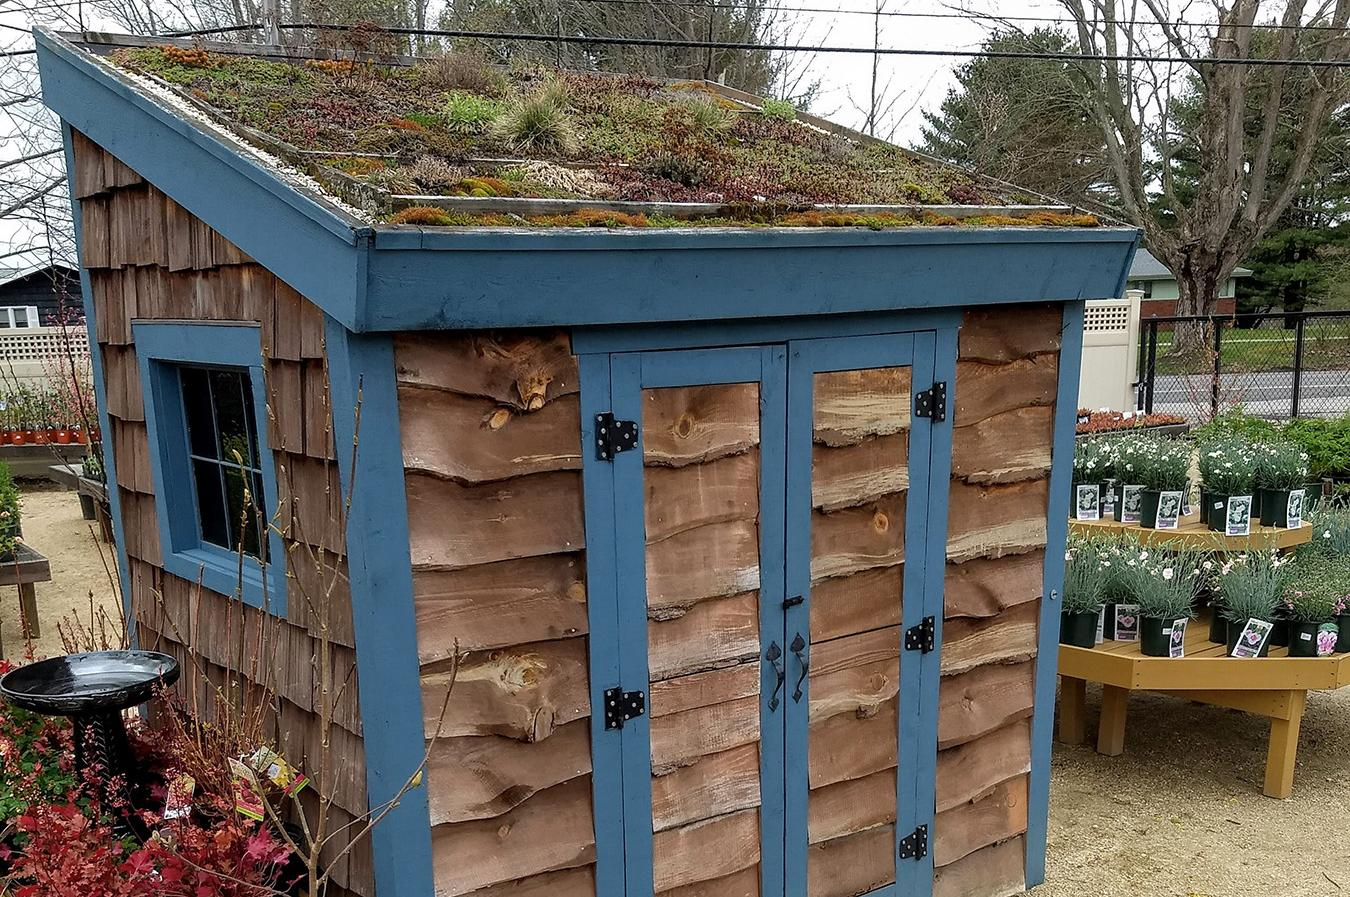 Ask the Builder: Yes, you can build your own garden shed | The